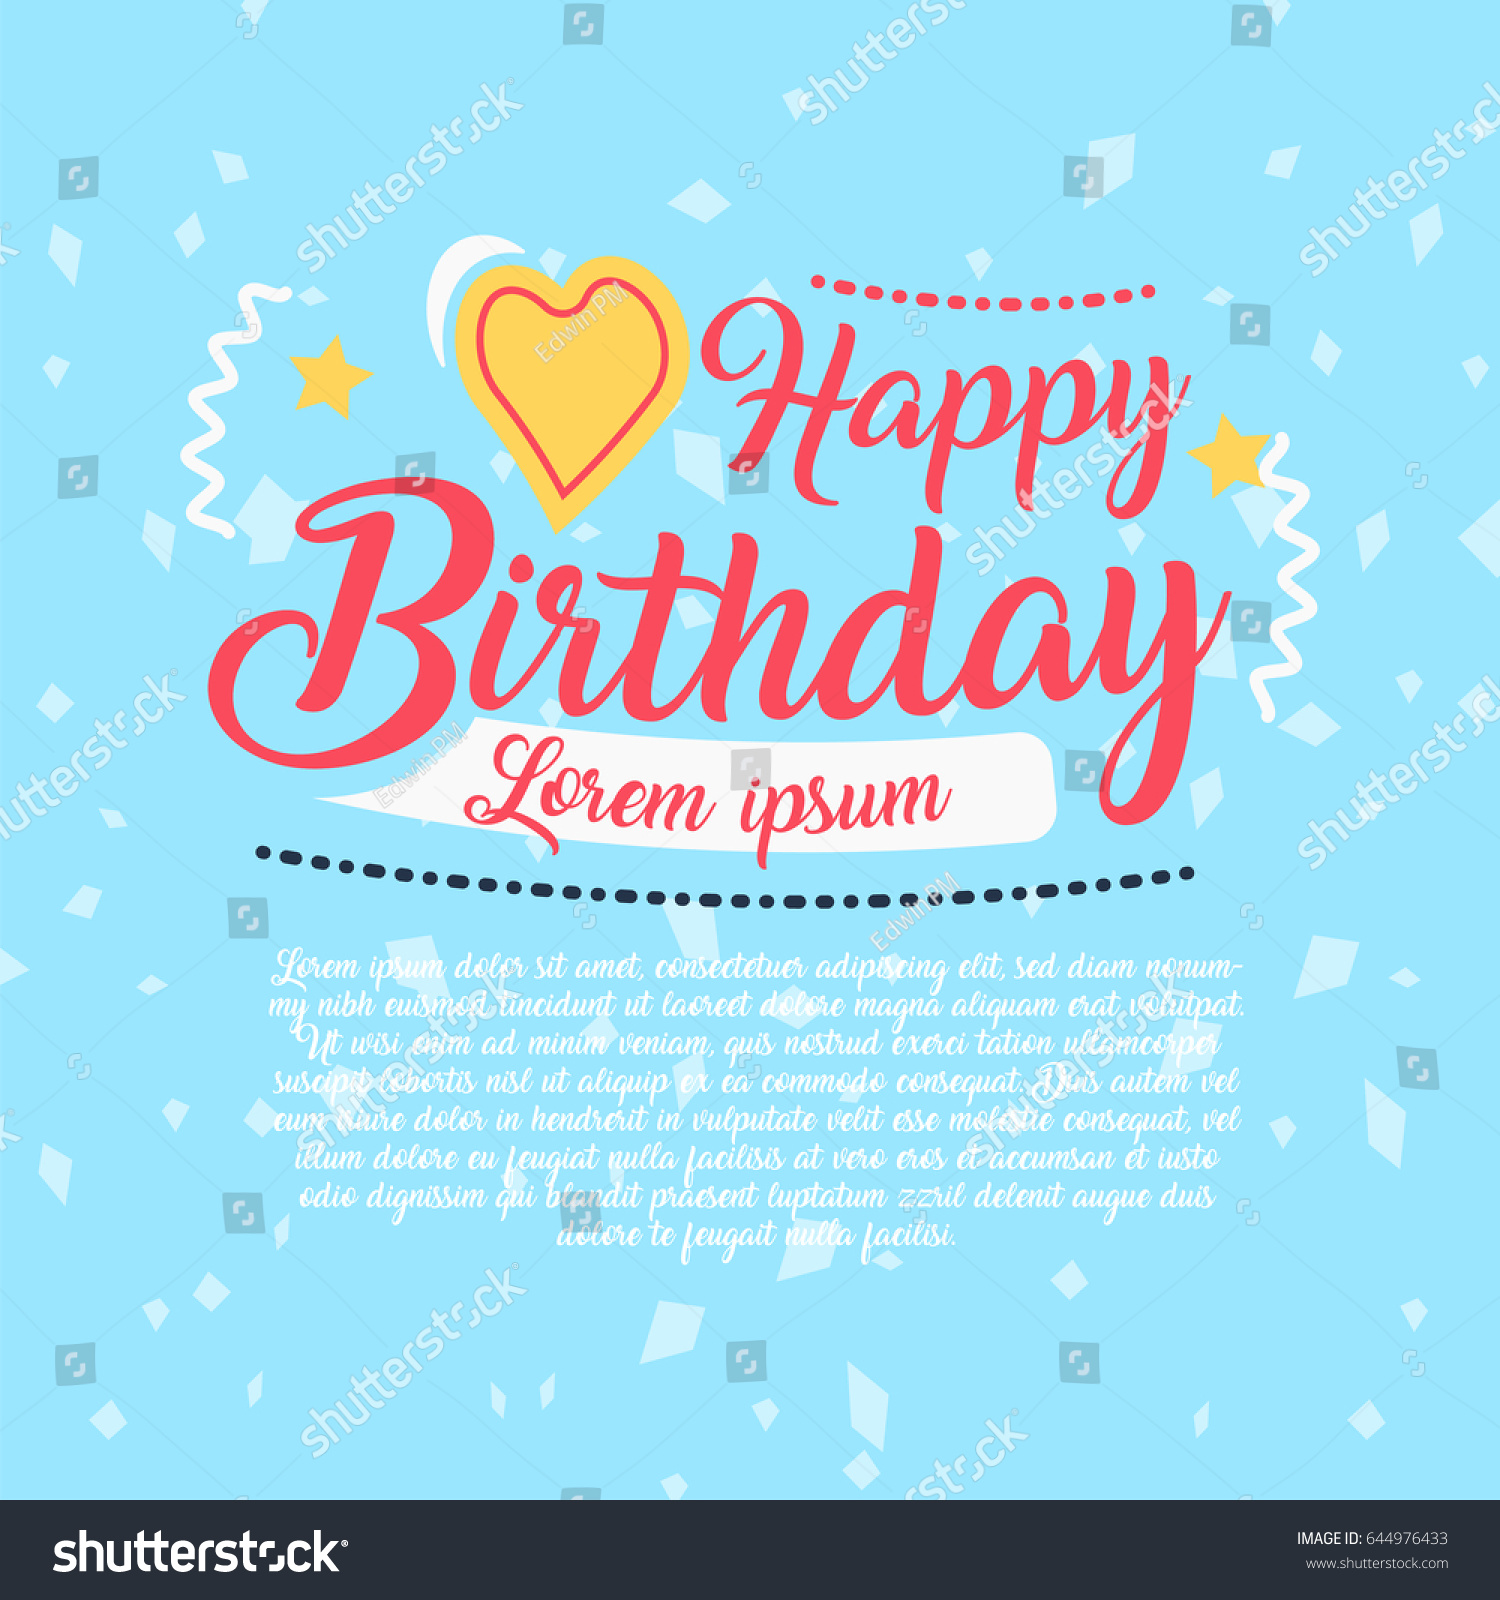 Happy birthday vector design greeting cards stock vector 644976433 happy birthday vector design for greeting cards birthday card invitation card kristyandbryce Images